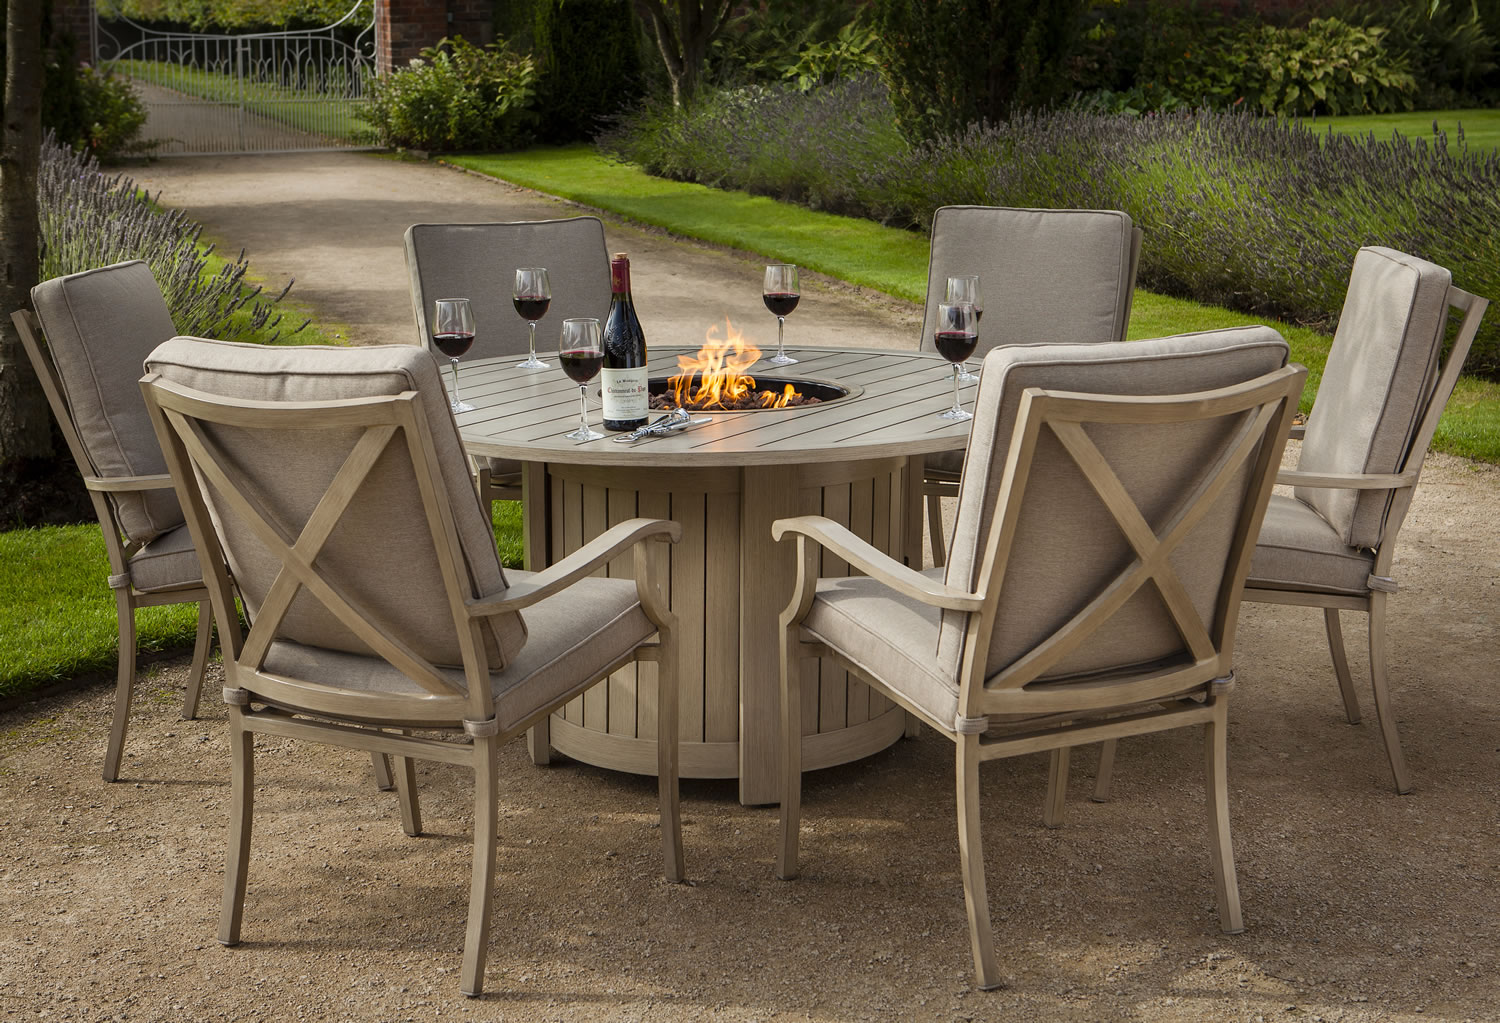 Fire Pit Dining Table Set : portland 6 seater set from hwiki.us size 1500 x 1023 jpeg 401kB